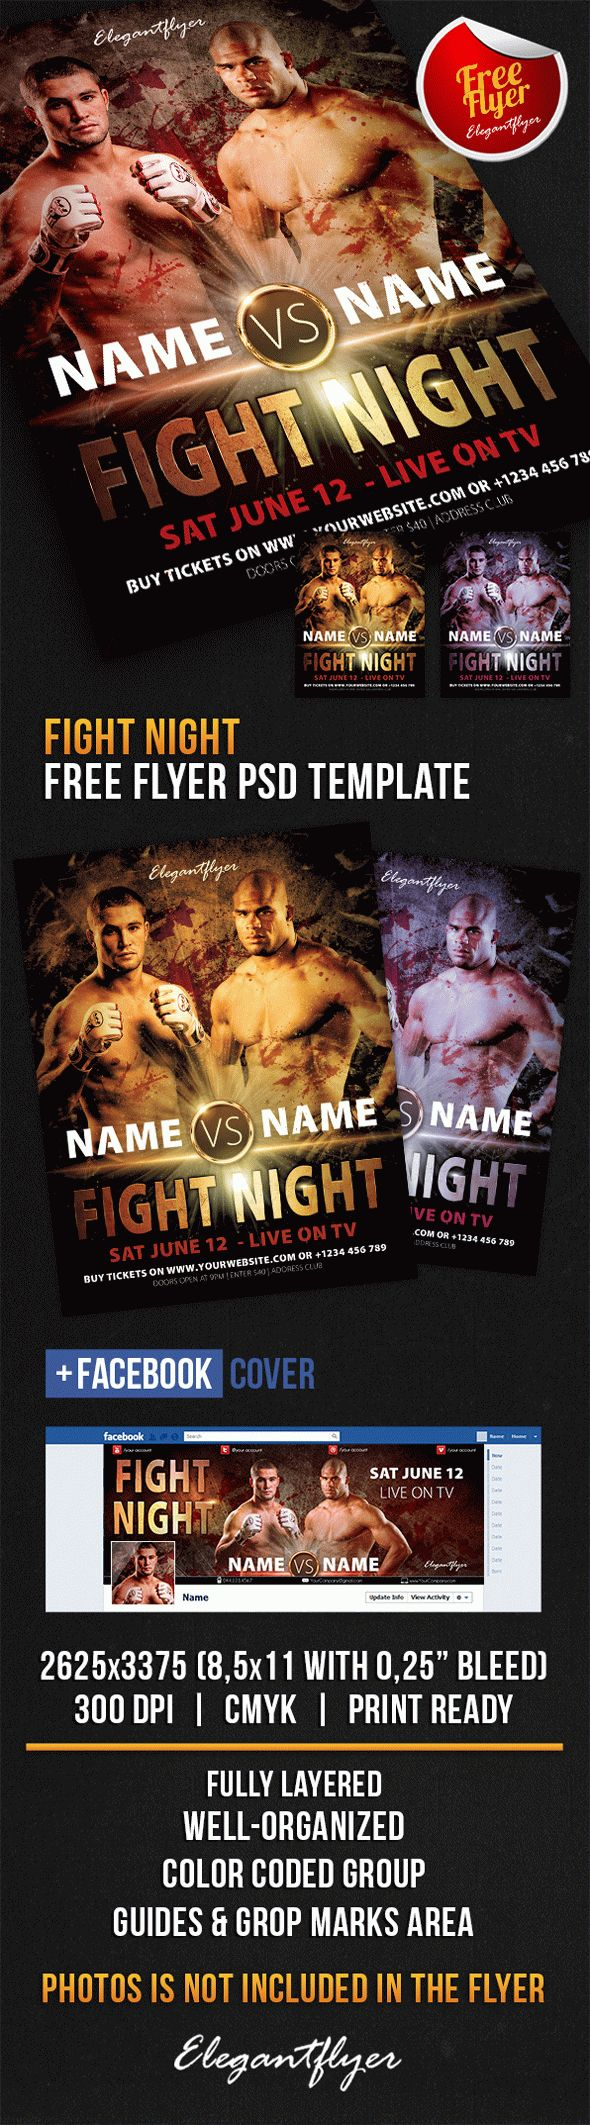 Fight Night – Free Flyer PSD Template + Facebook Cover